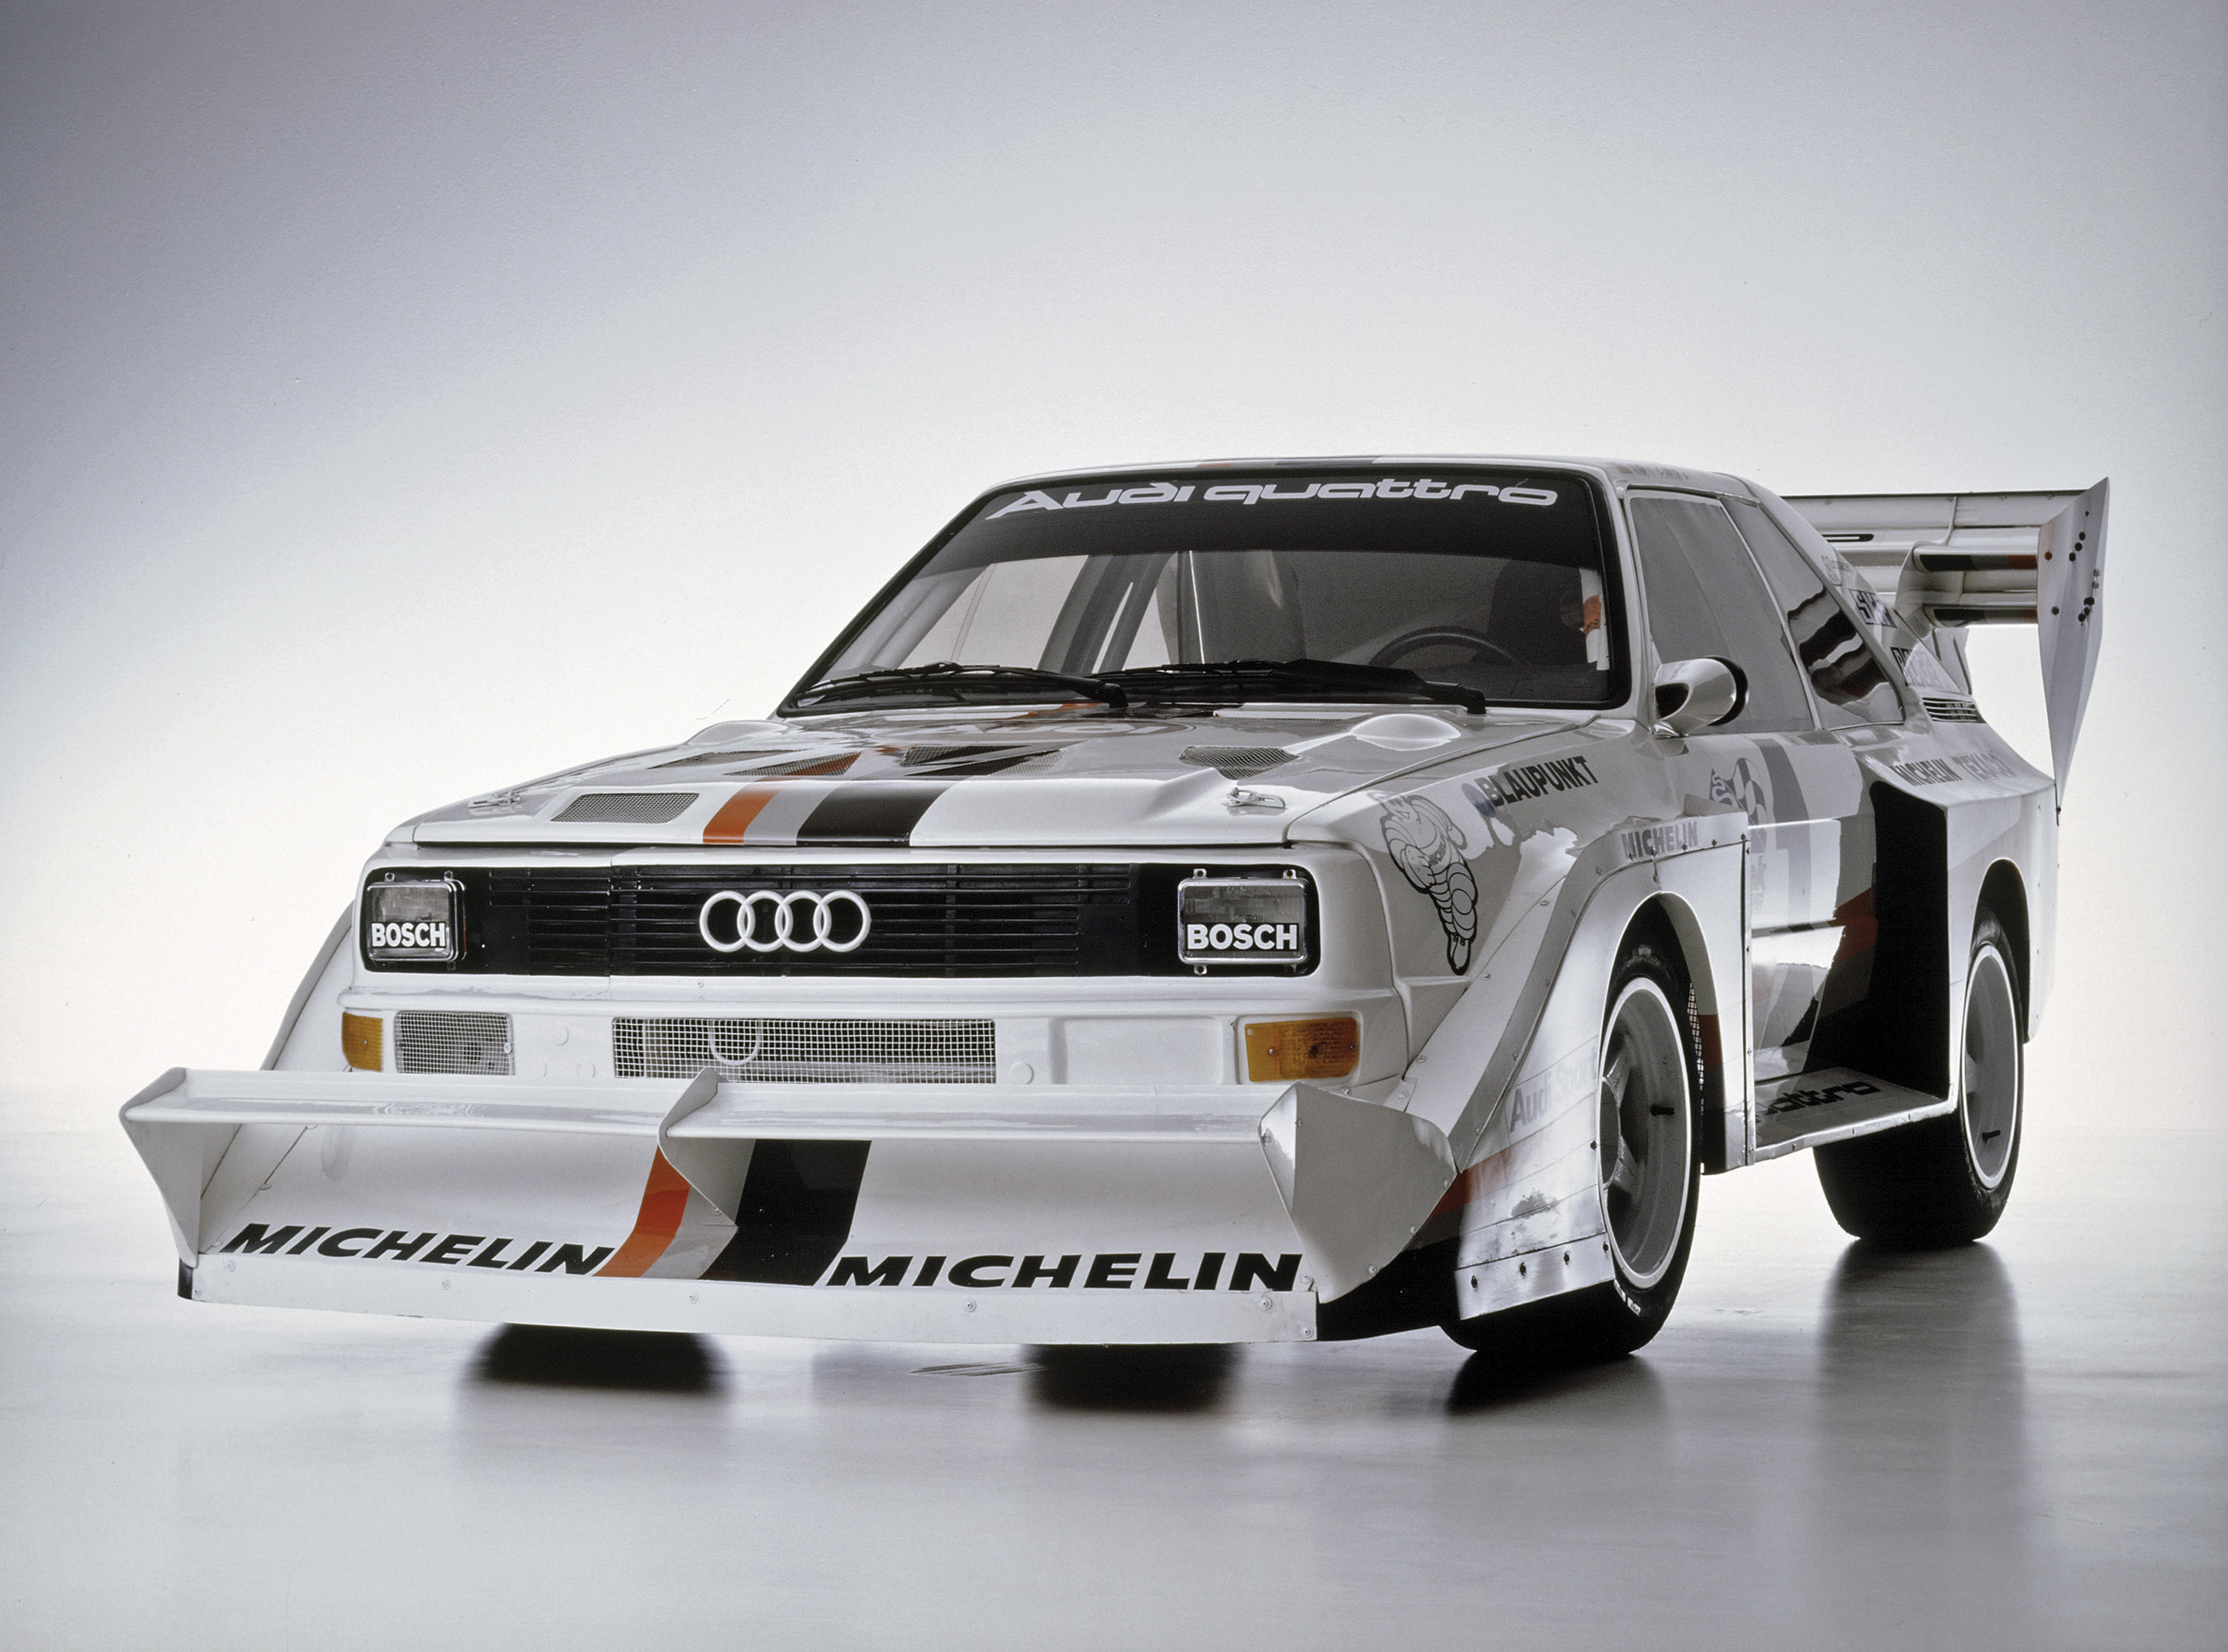 1985 audi sport quattro s1 e2. Black Bedroom Furniture Sets. Home Design Ideas